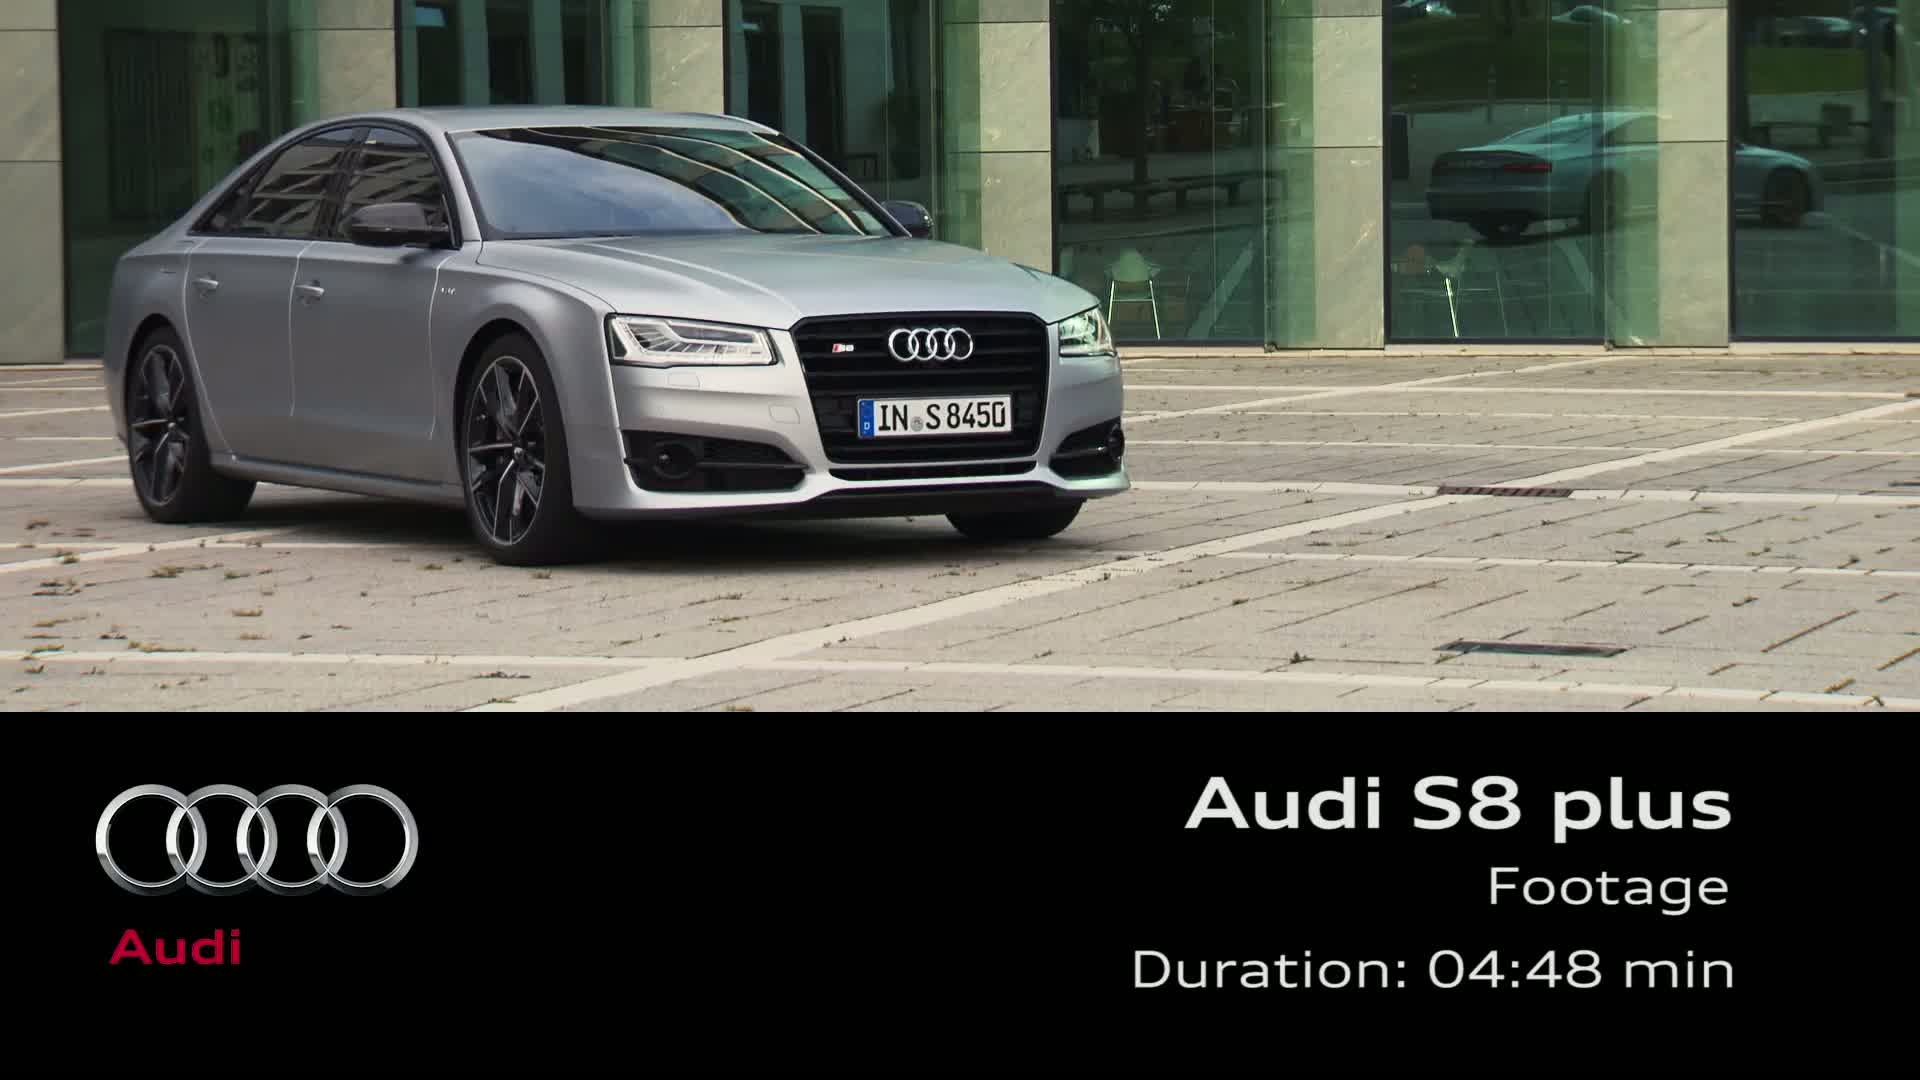 The Audi S8 plus - Footage